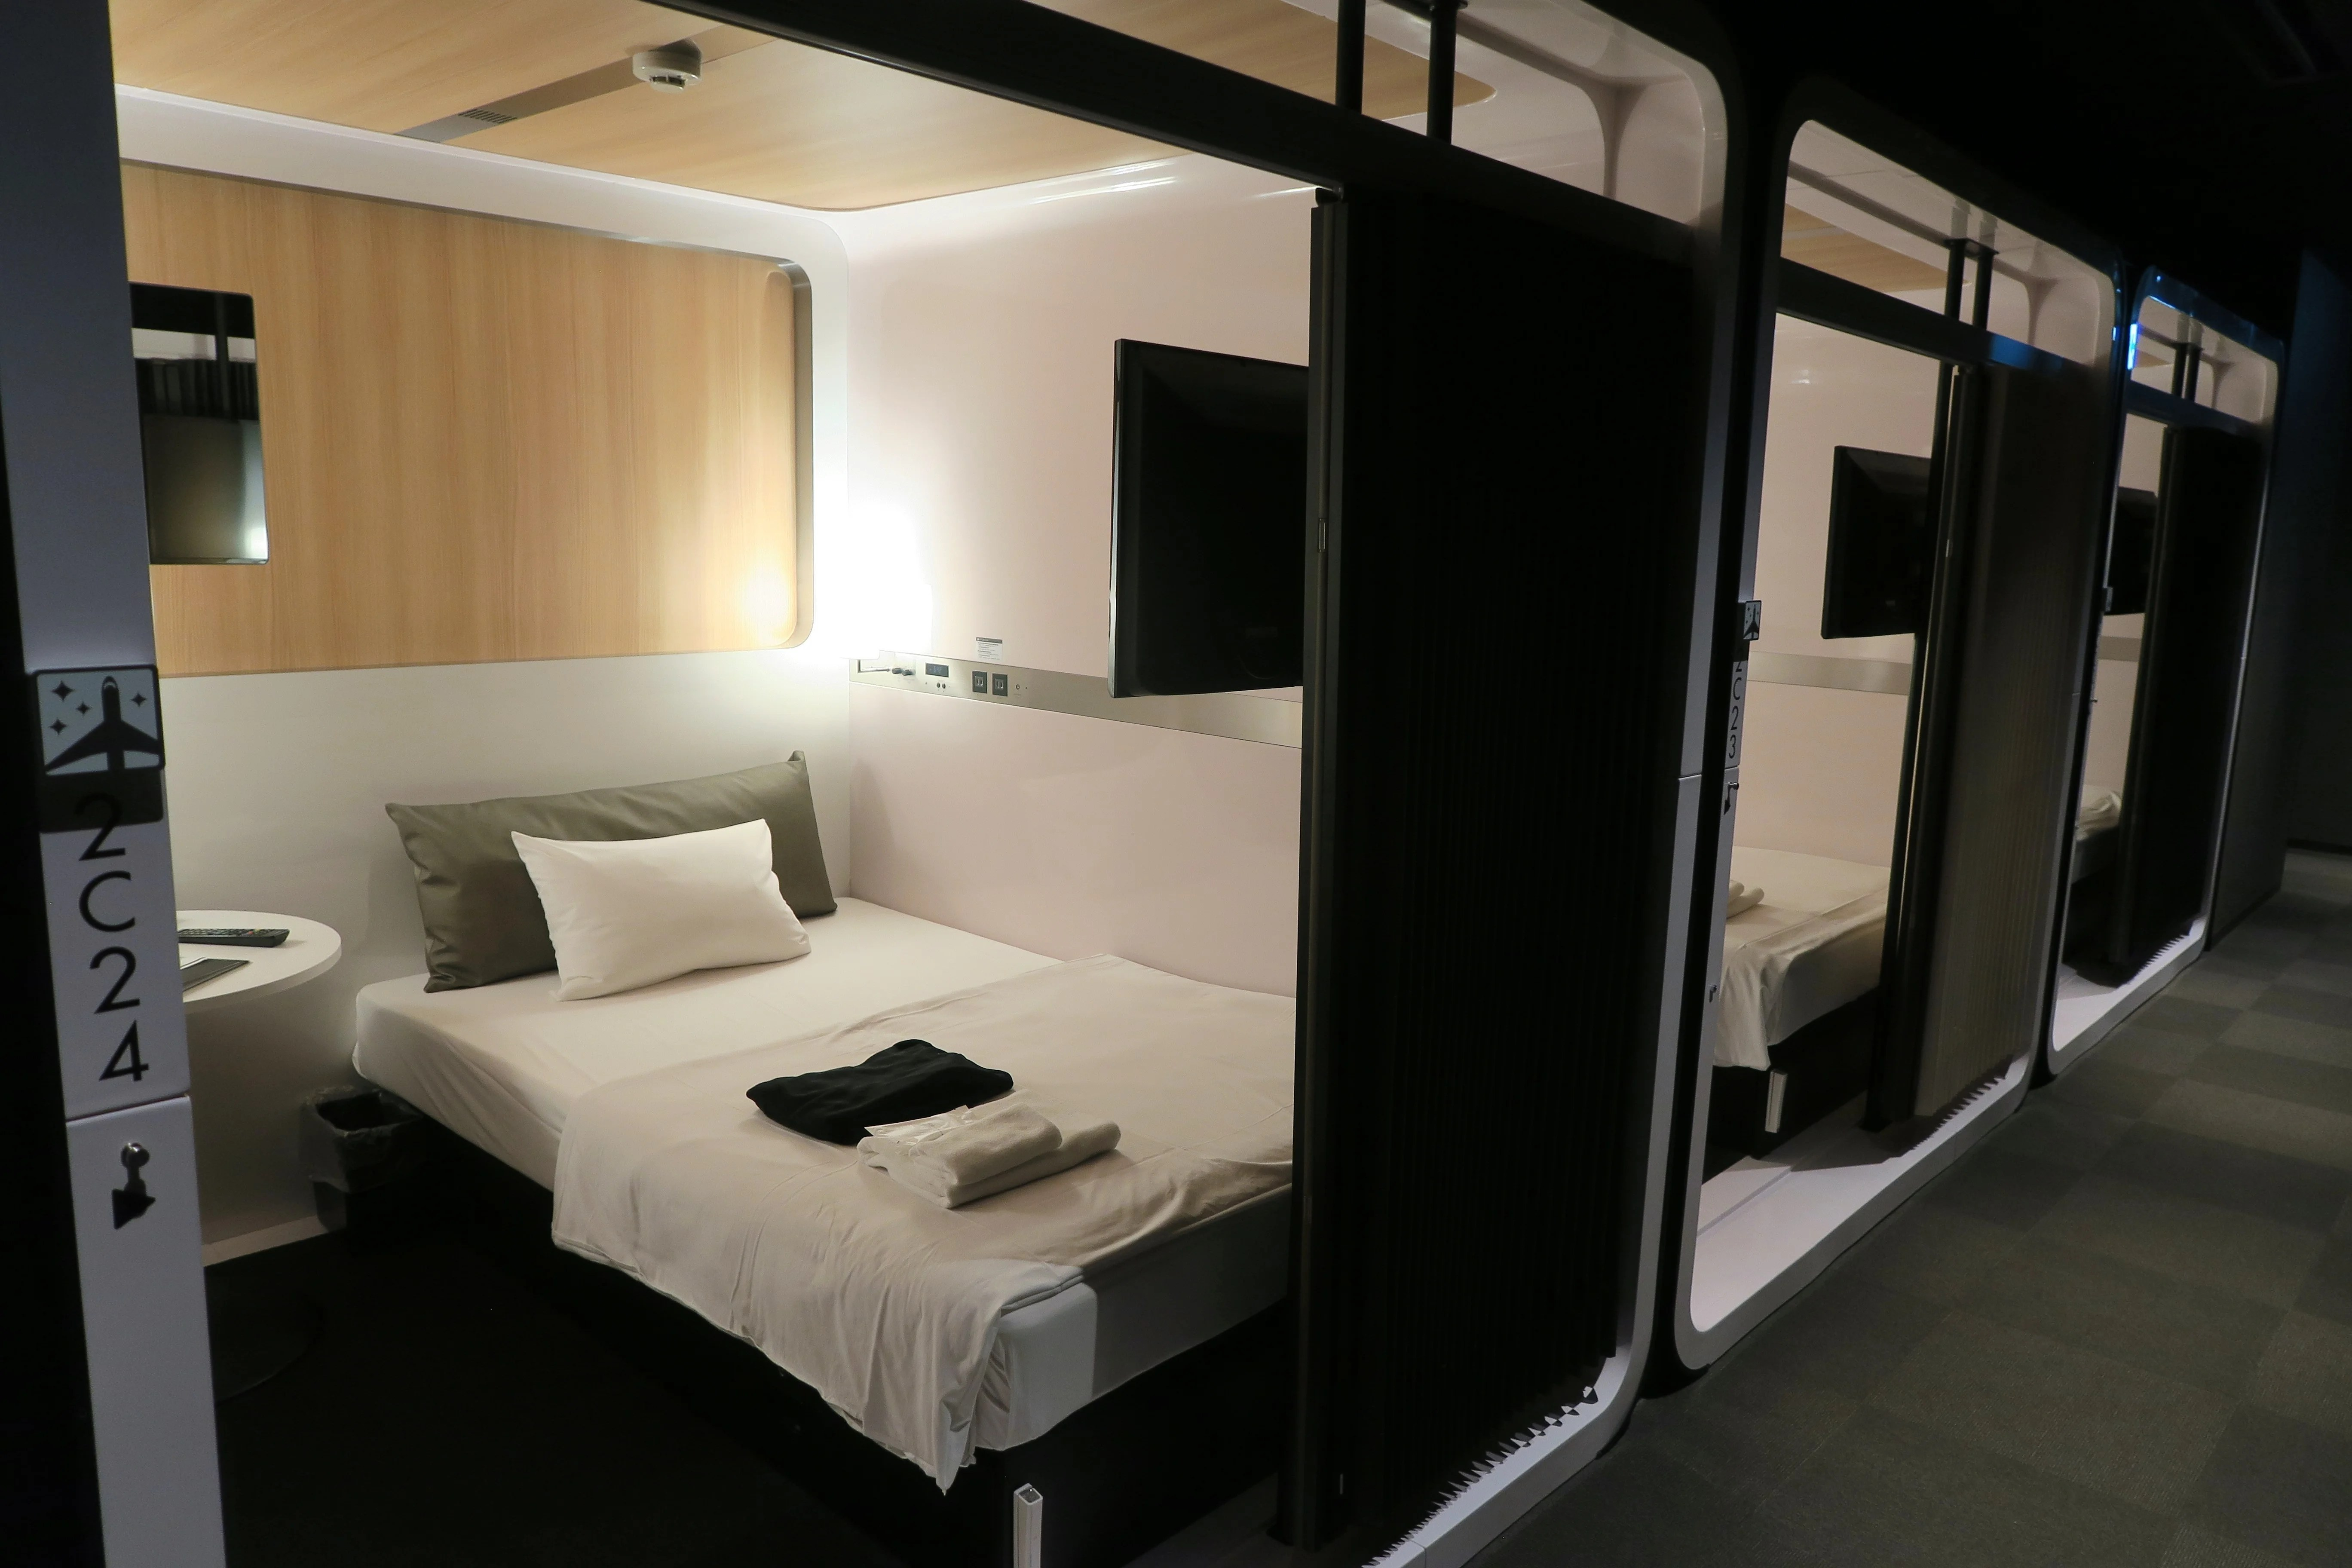 Kapselhotel Tokyo Hotel Review First Cabin Capsule Hotel In Tokyo